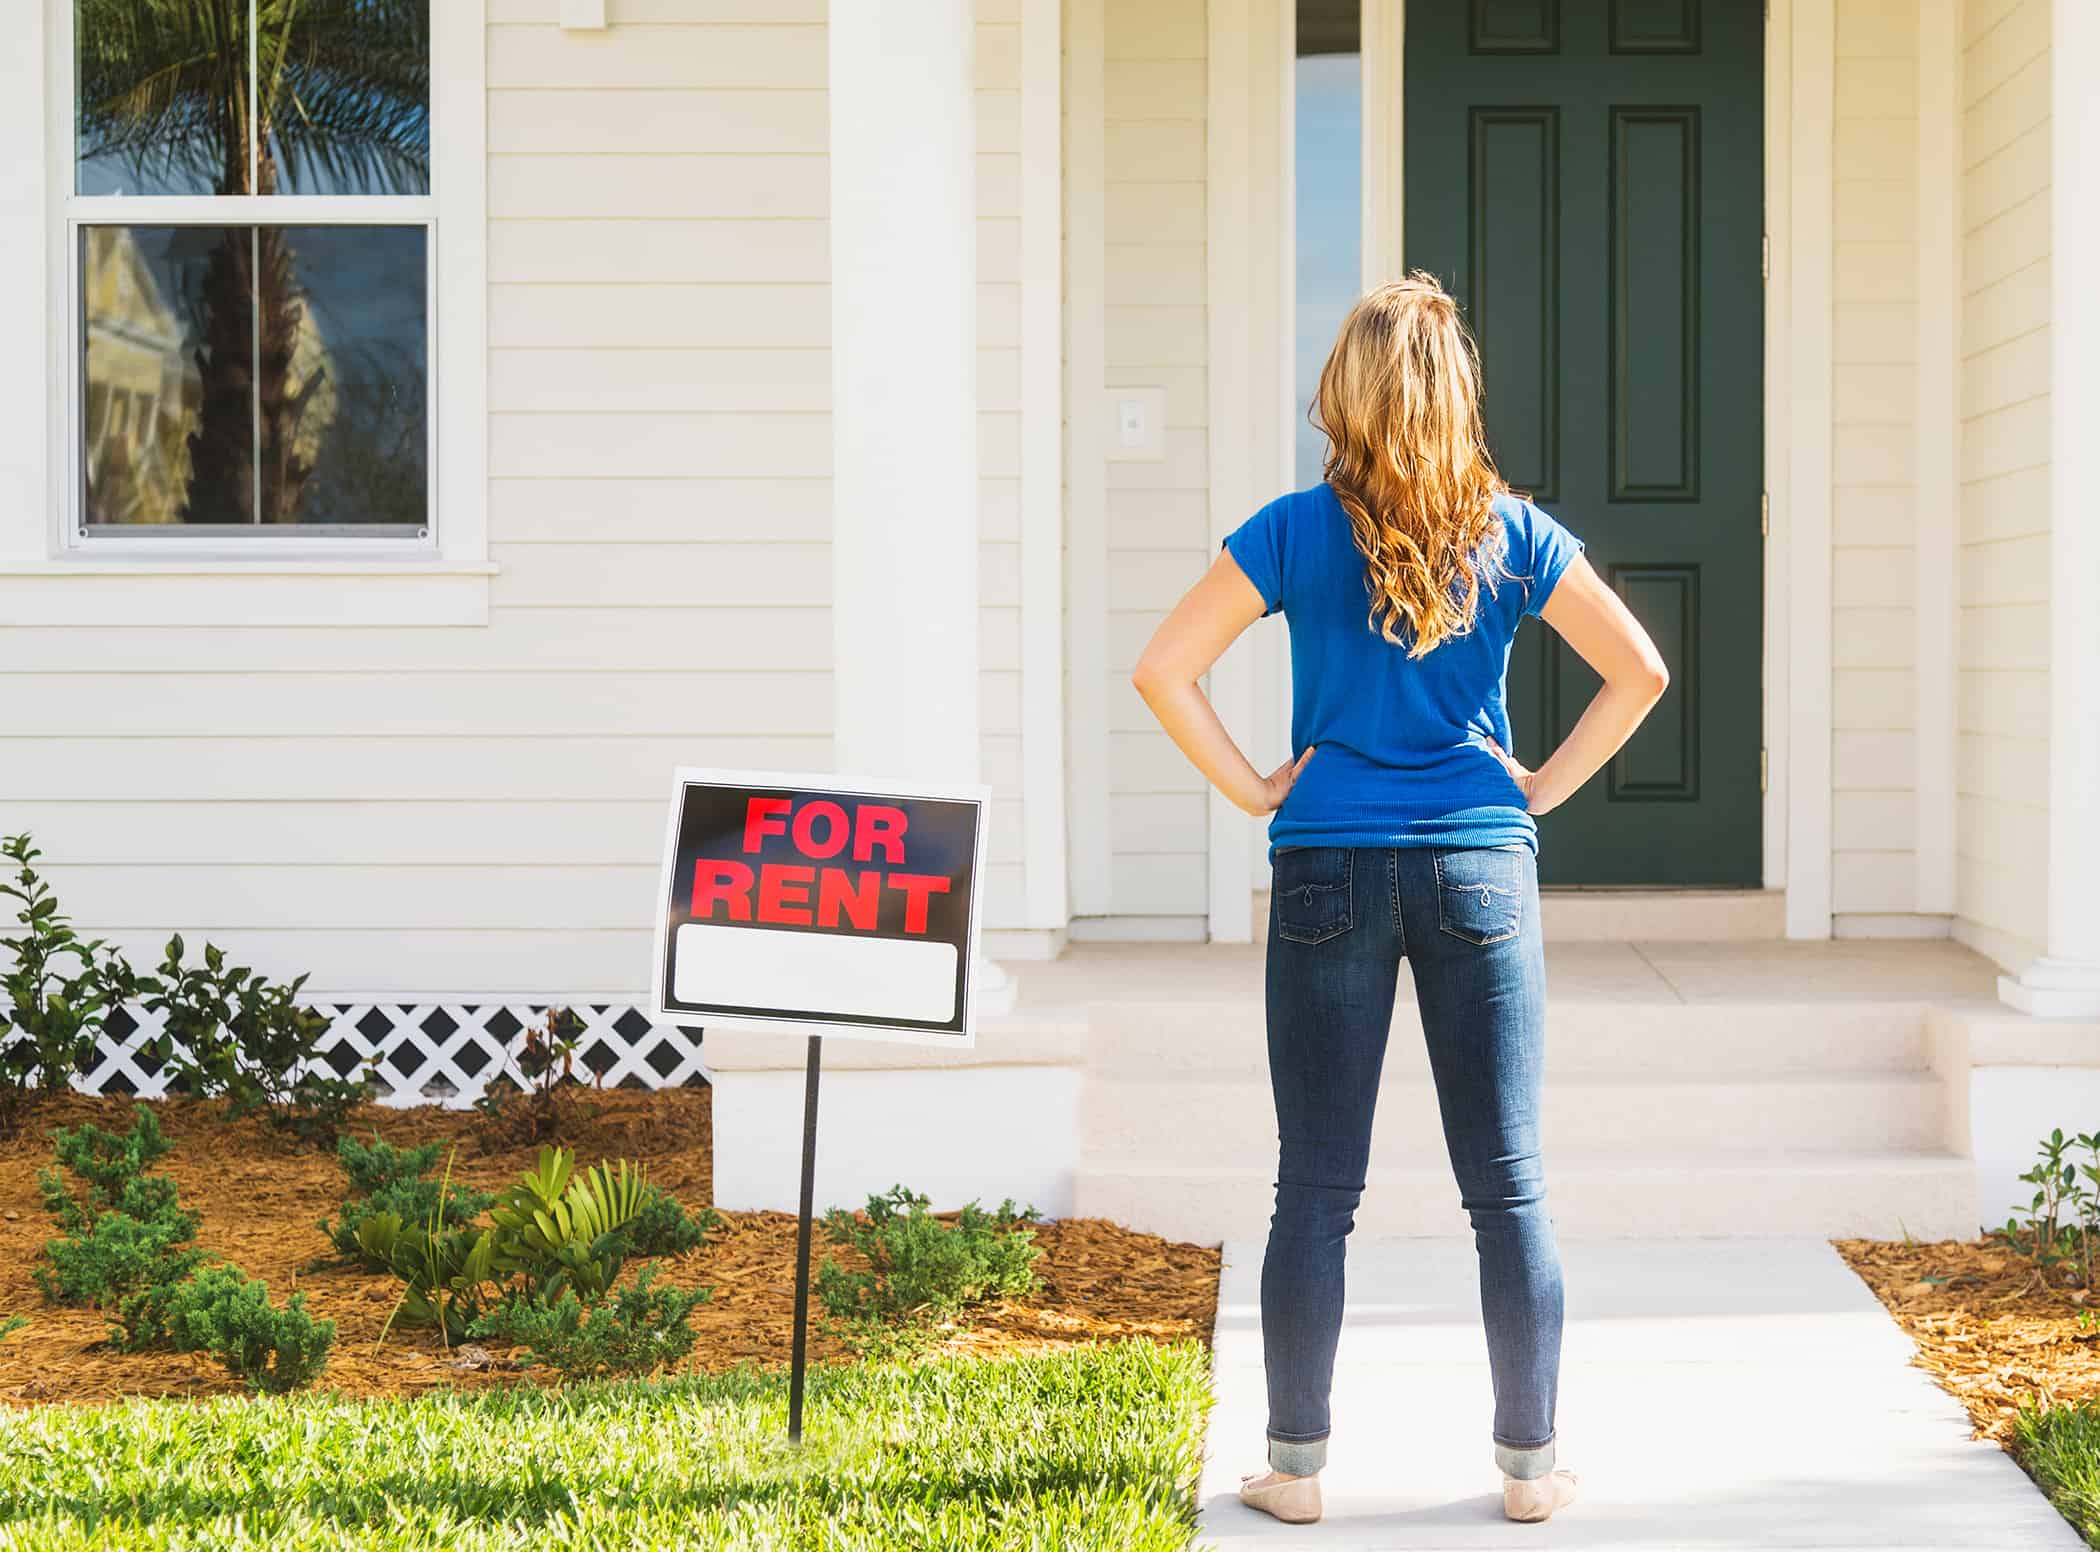 Self Showings – The Ideal Leasing Solution for Social-Distancing Times